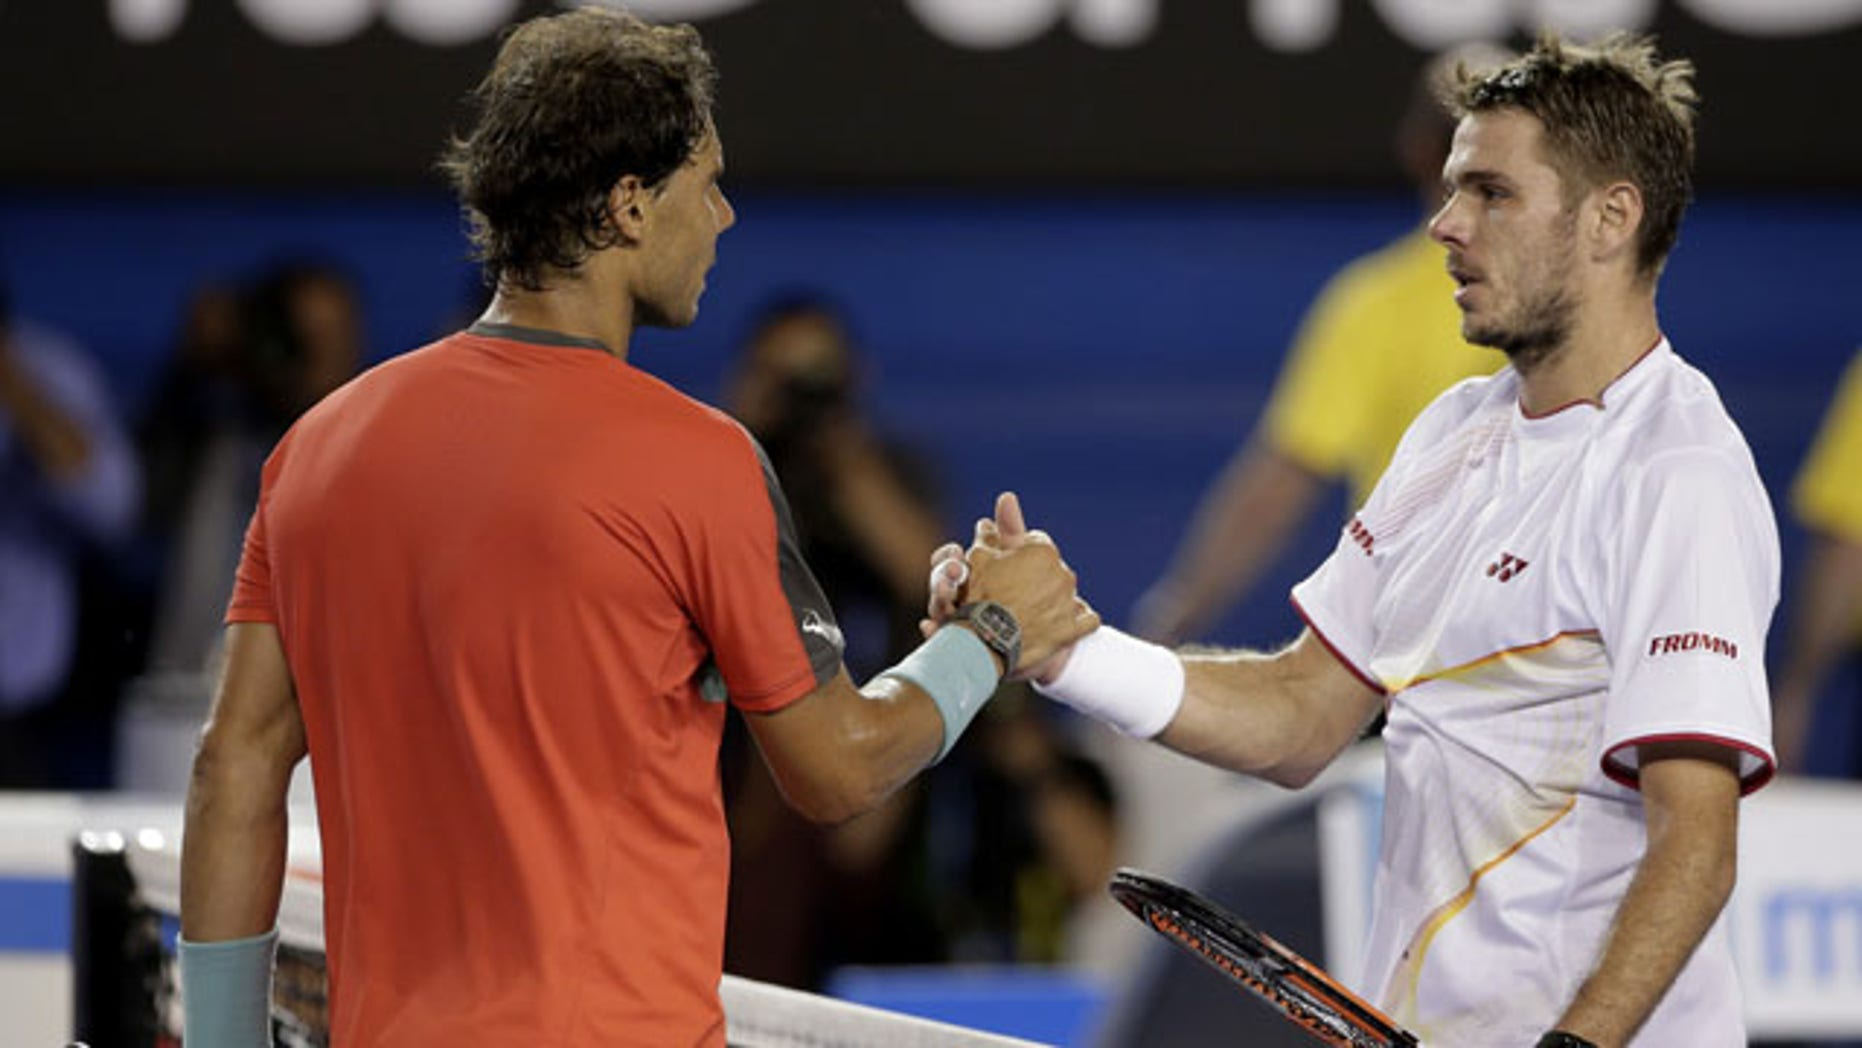 January 26, 2014: Stanislas Wawrinka of Switzerland, right, shakes hands with Rafael Nadal of Spain at the net after Wawrinka won the men's singles final at the Australian Open tennis championship in Melbourne.(AP Photo/Rick Rycroft)